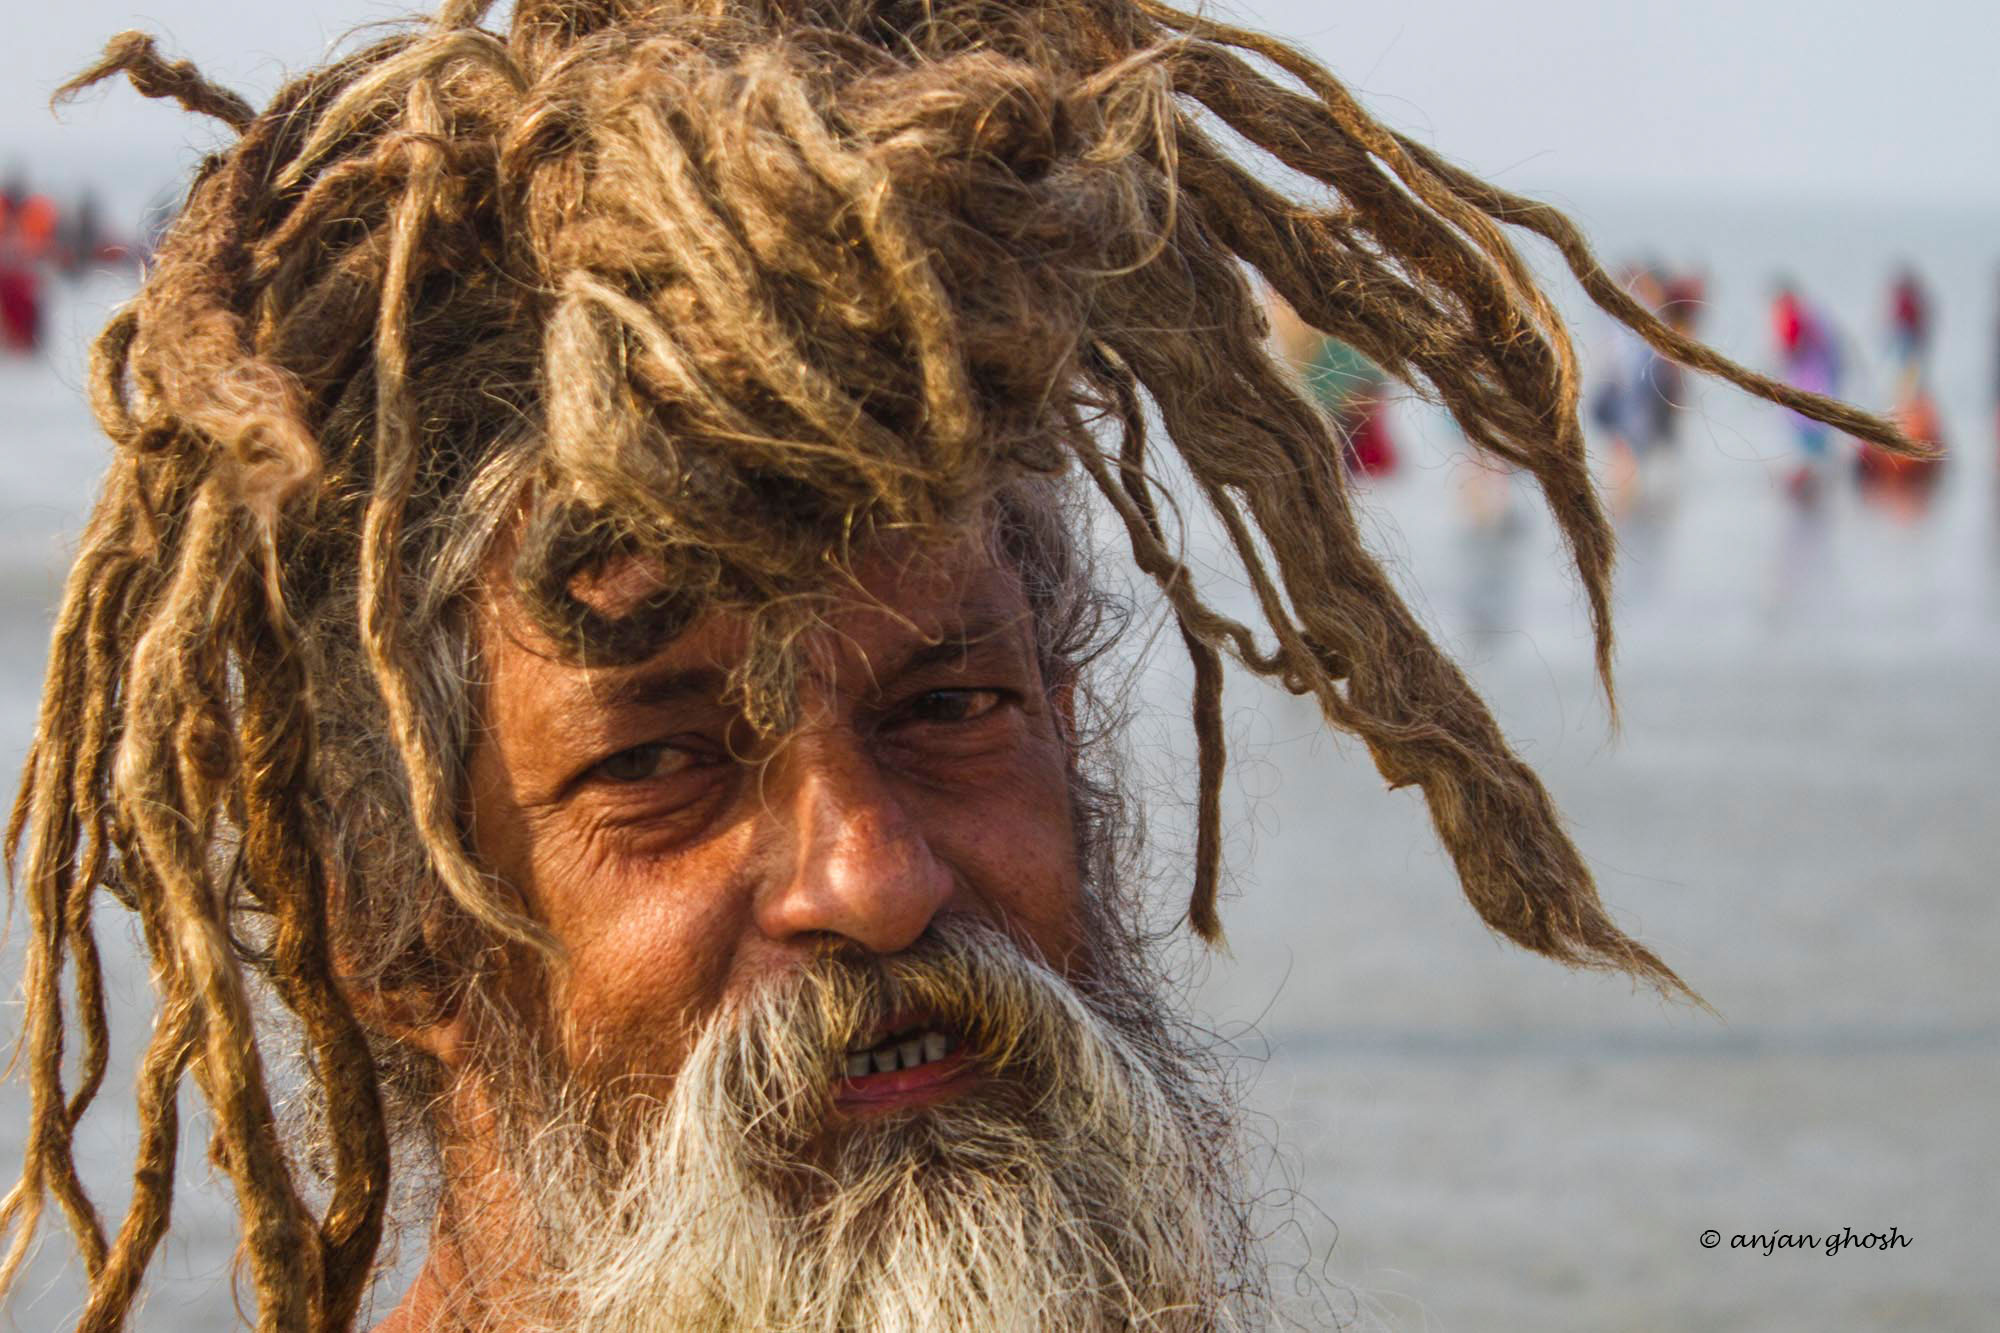 Pilgrims to Gangasagar. Copyright Photograph by Anjan Ghosh for Photography World Article